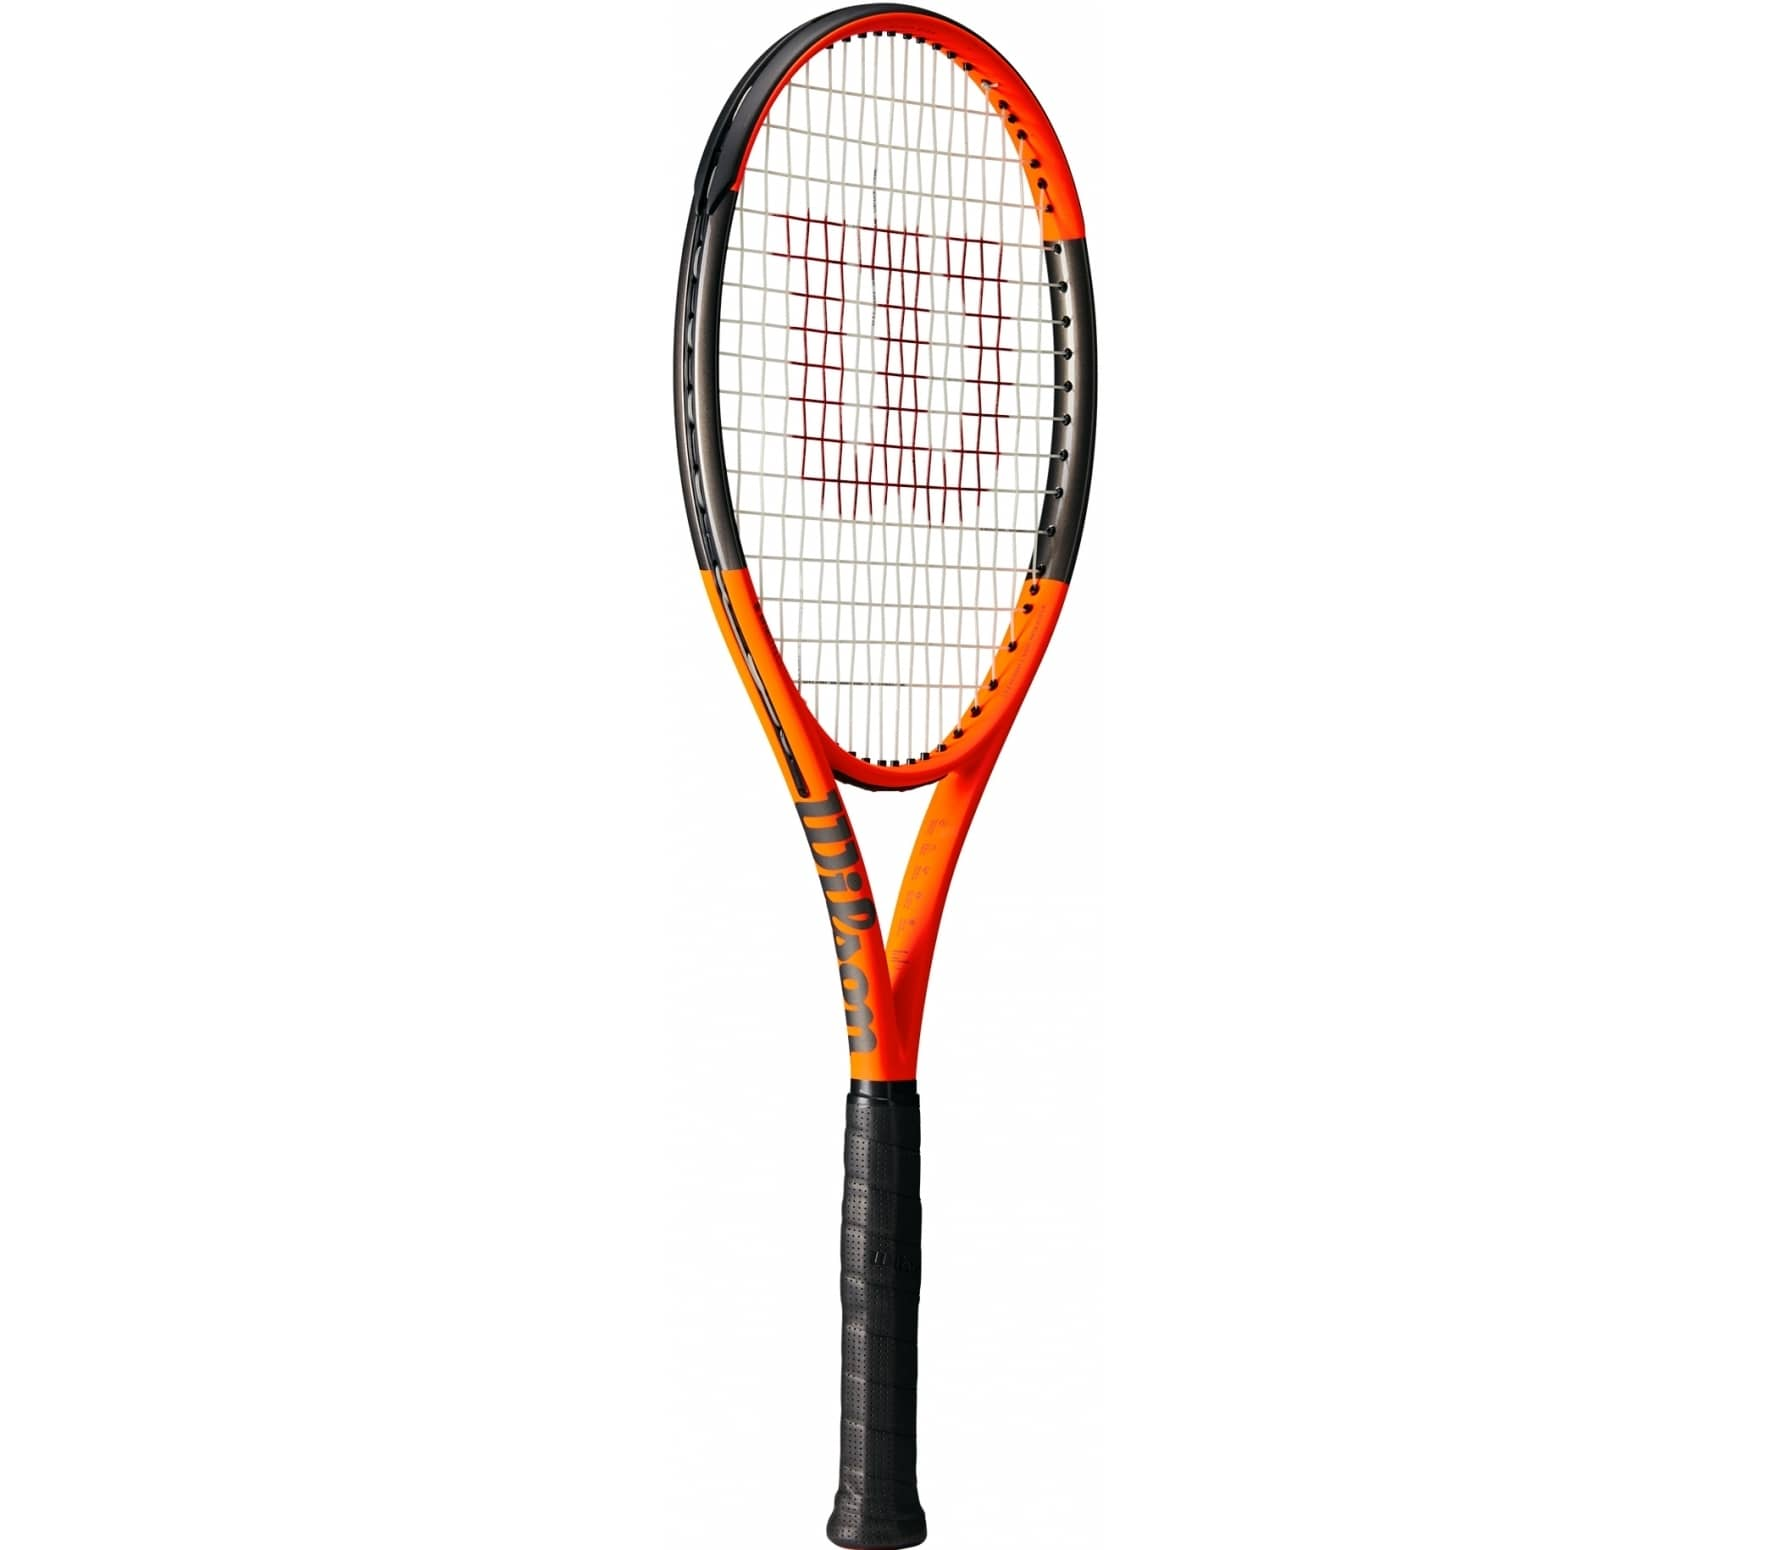 Wilson - Burn 100LS (unstrung) Reversed tennis racket (orange/black)